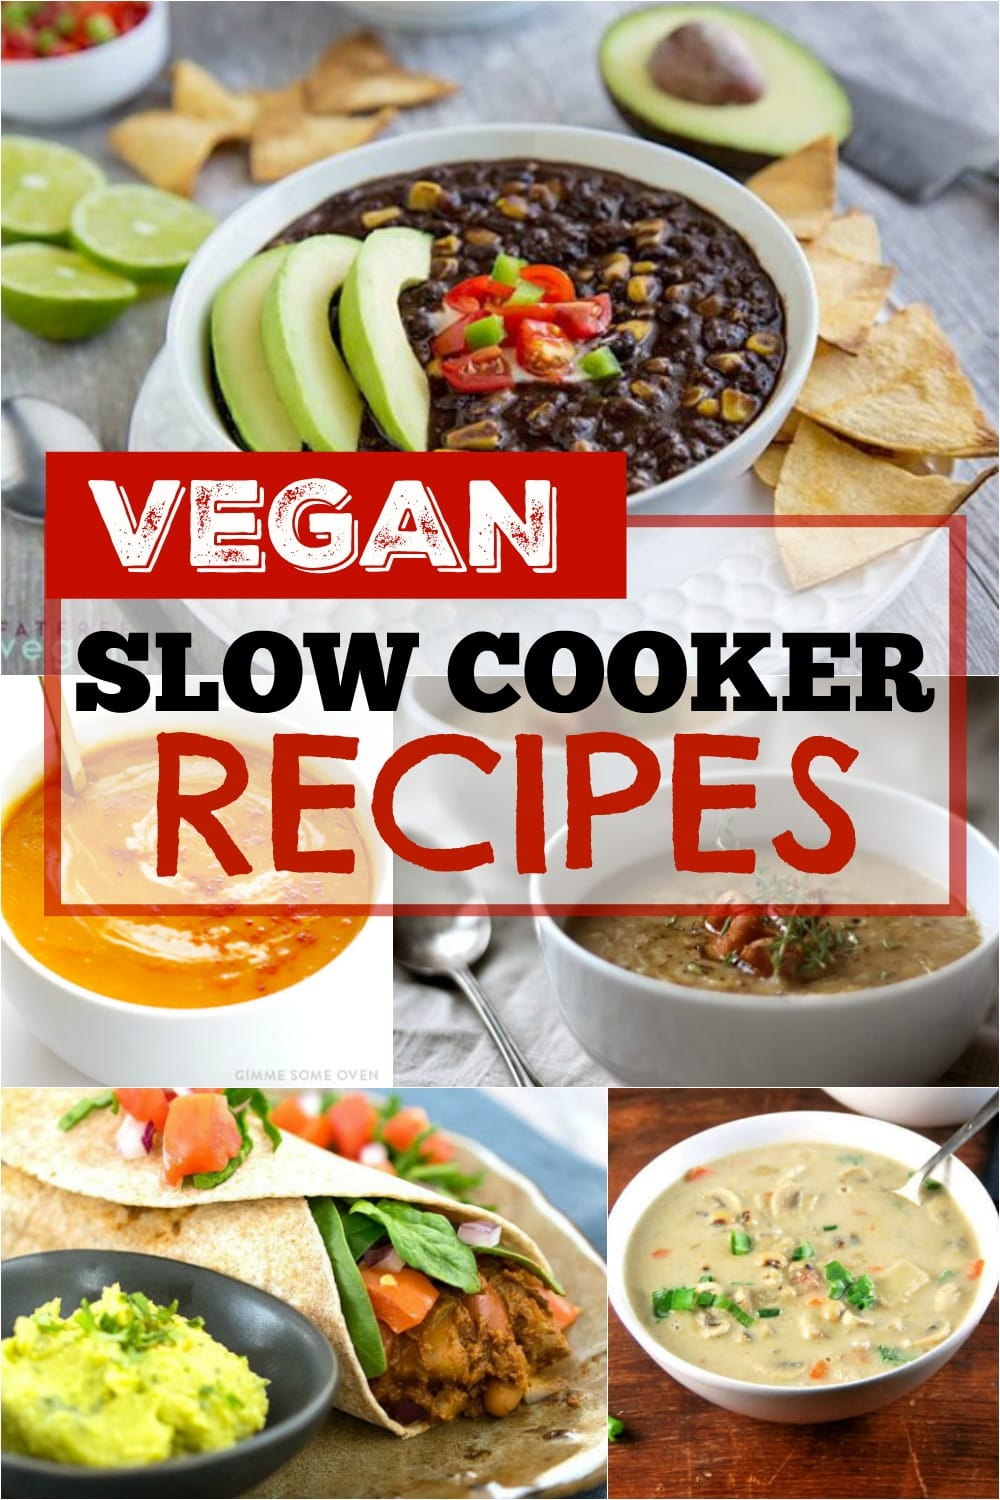 13 tasty vegan slow cooker recipes super foods life for Crock pot vegetarian recipes healthy